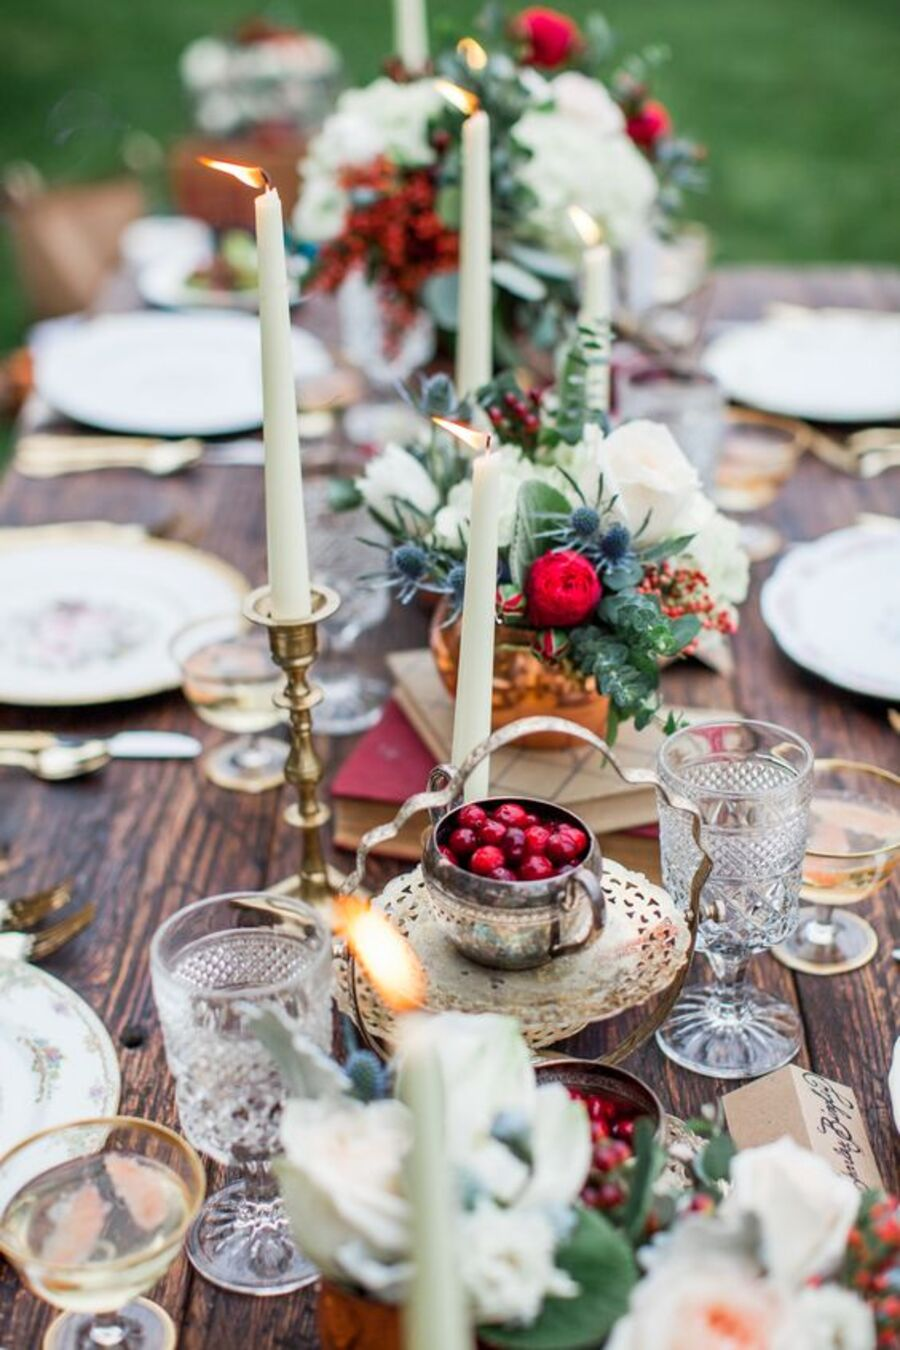 a-boho-Зимняя бохо свадьба идеи и вдохновение-with-copper-and-gold-accessories-crystal-glasses-cranberries-thistles-and-eucalyptus-and-candles